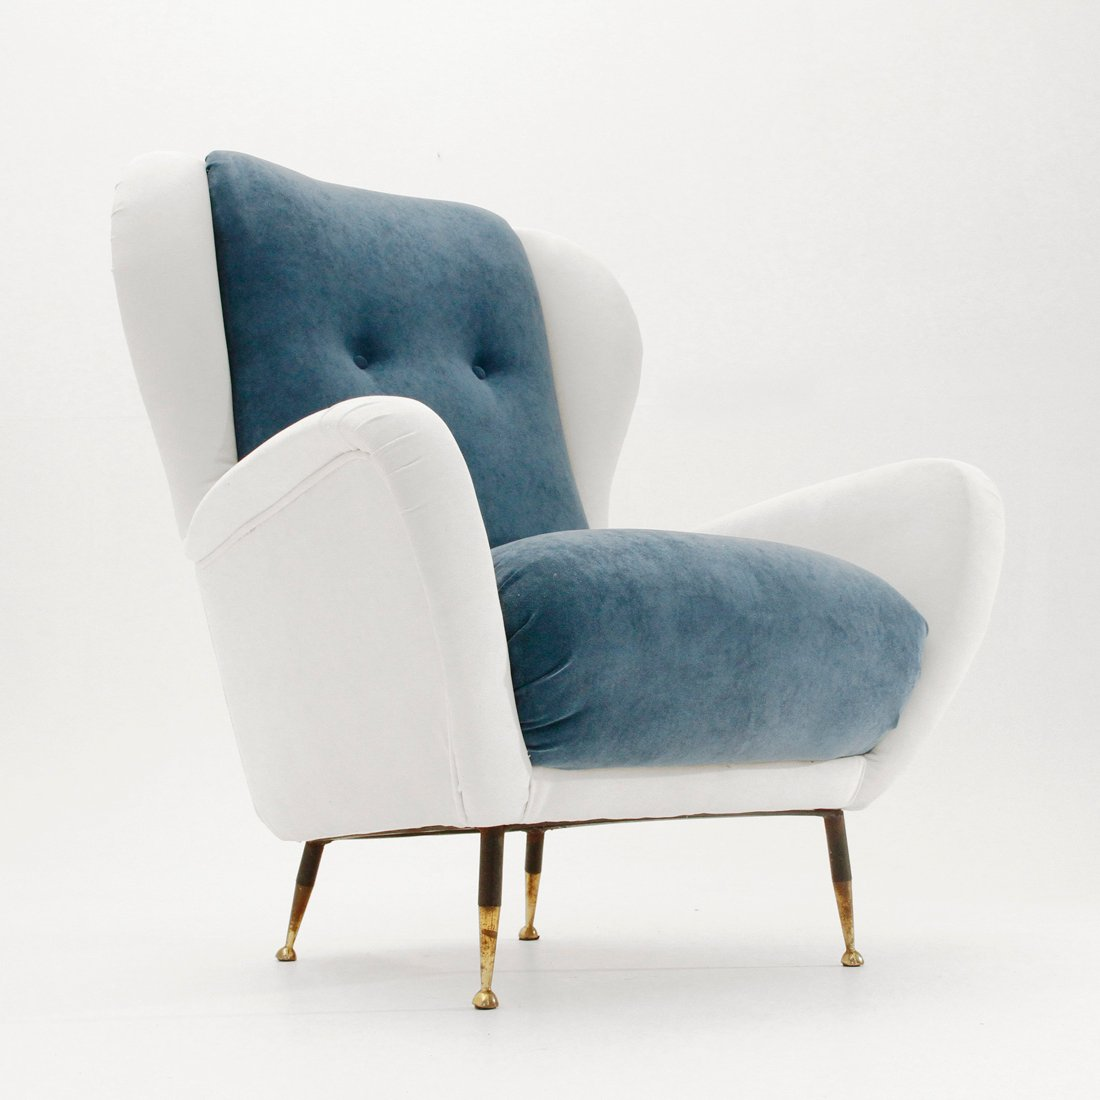 Italian Mid Century White And Blue Velvet Armchair, 1950s